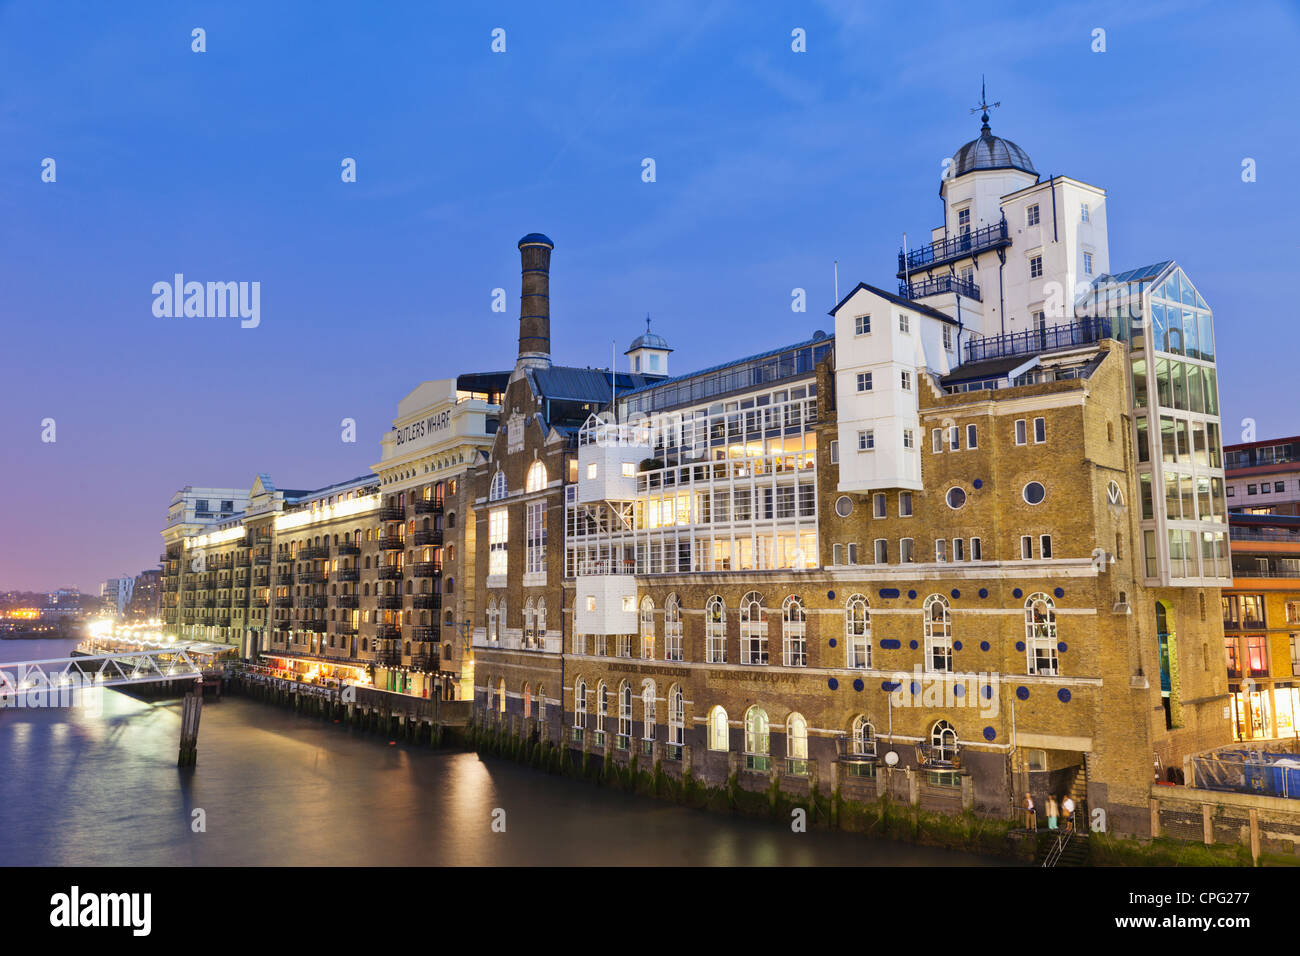 England, London, Southwark, Shad Thames, Butlers Wharf and River Thames - Stock Image